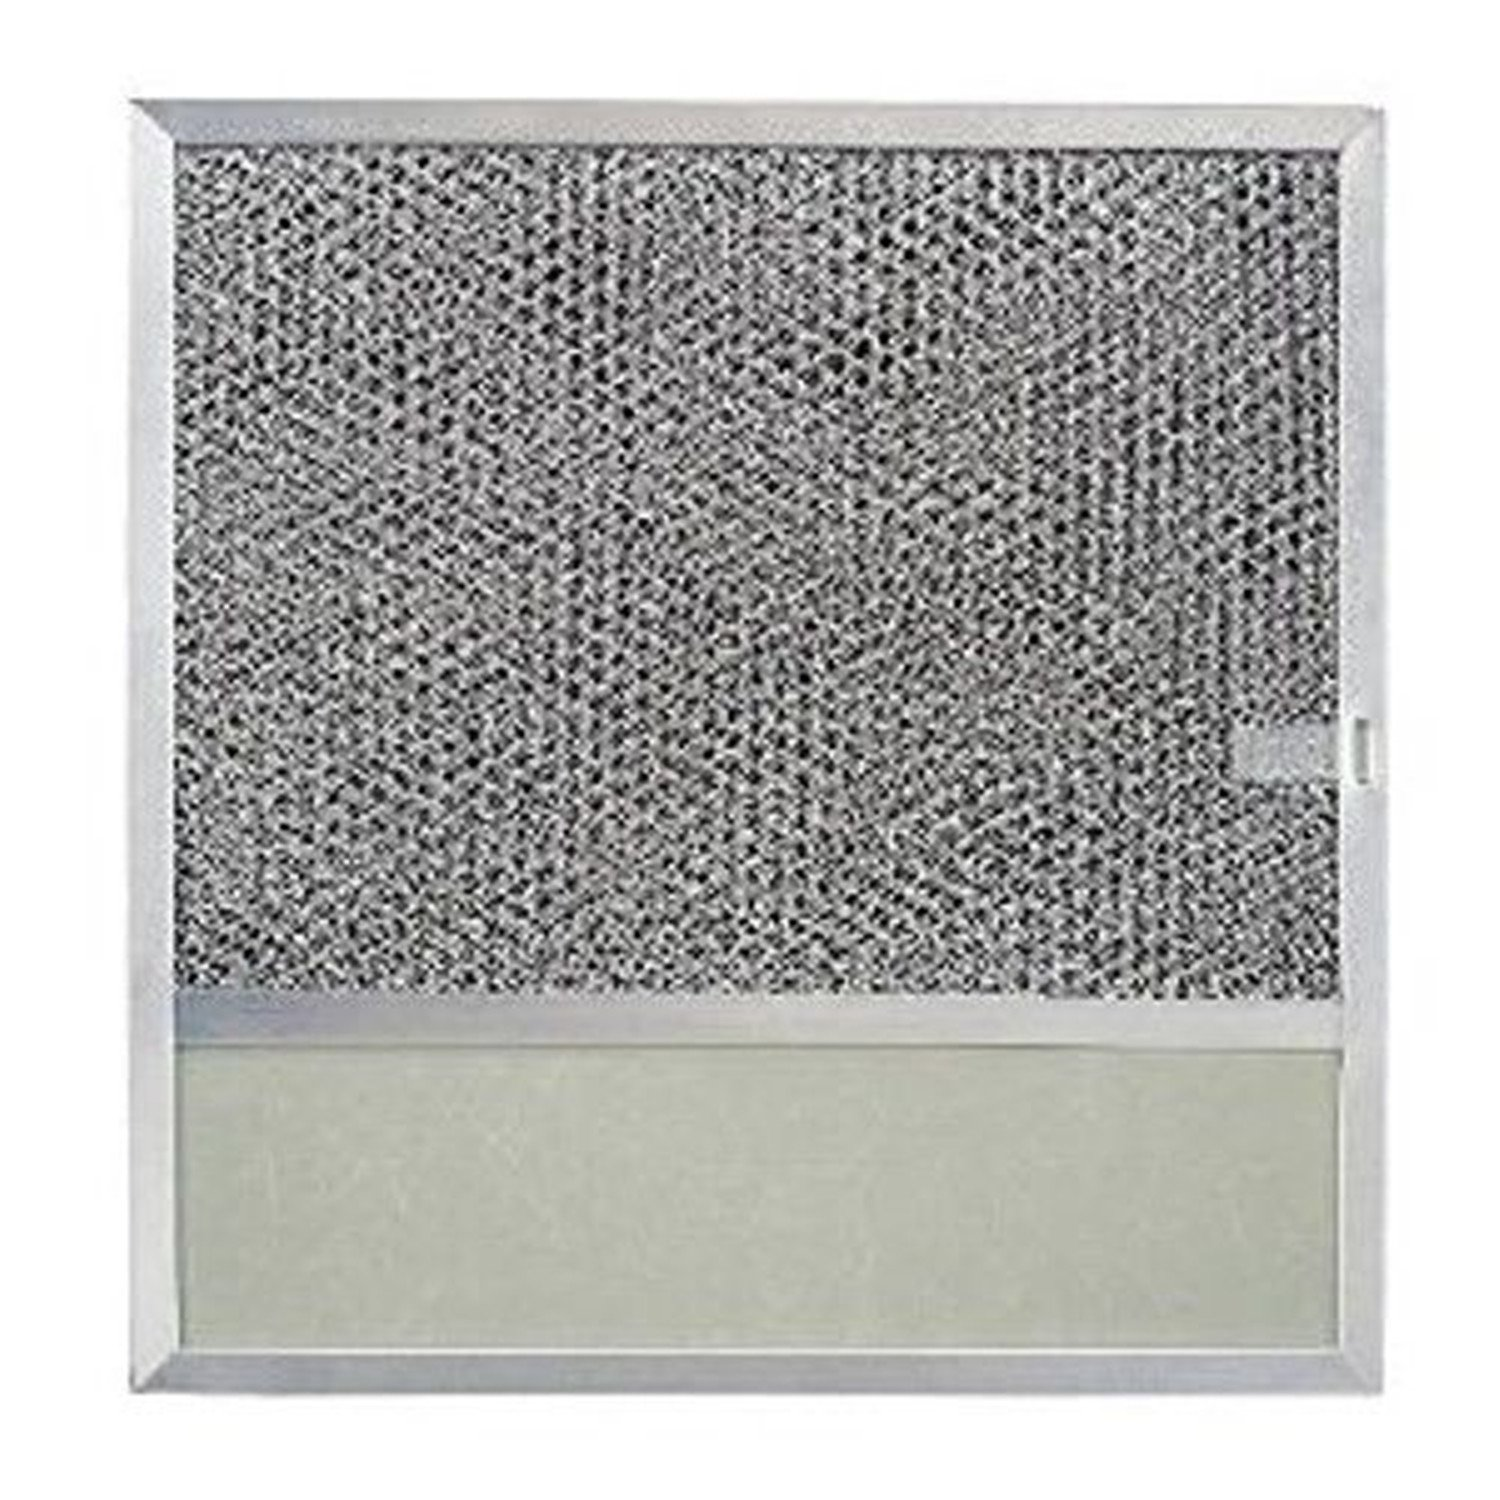 Pokin for Broan NuTone RangeAire BP57 R610050 Aluminum Mesh Vent Lens Filter Replacement